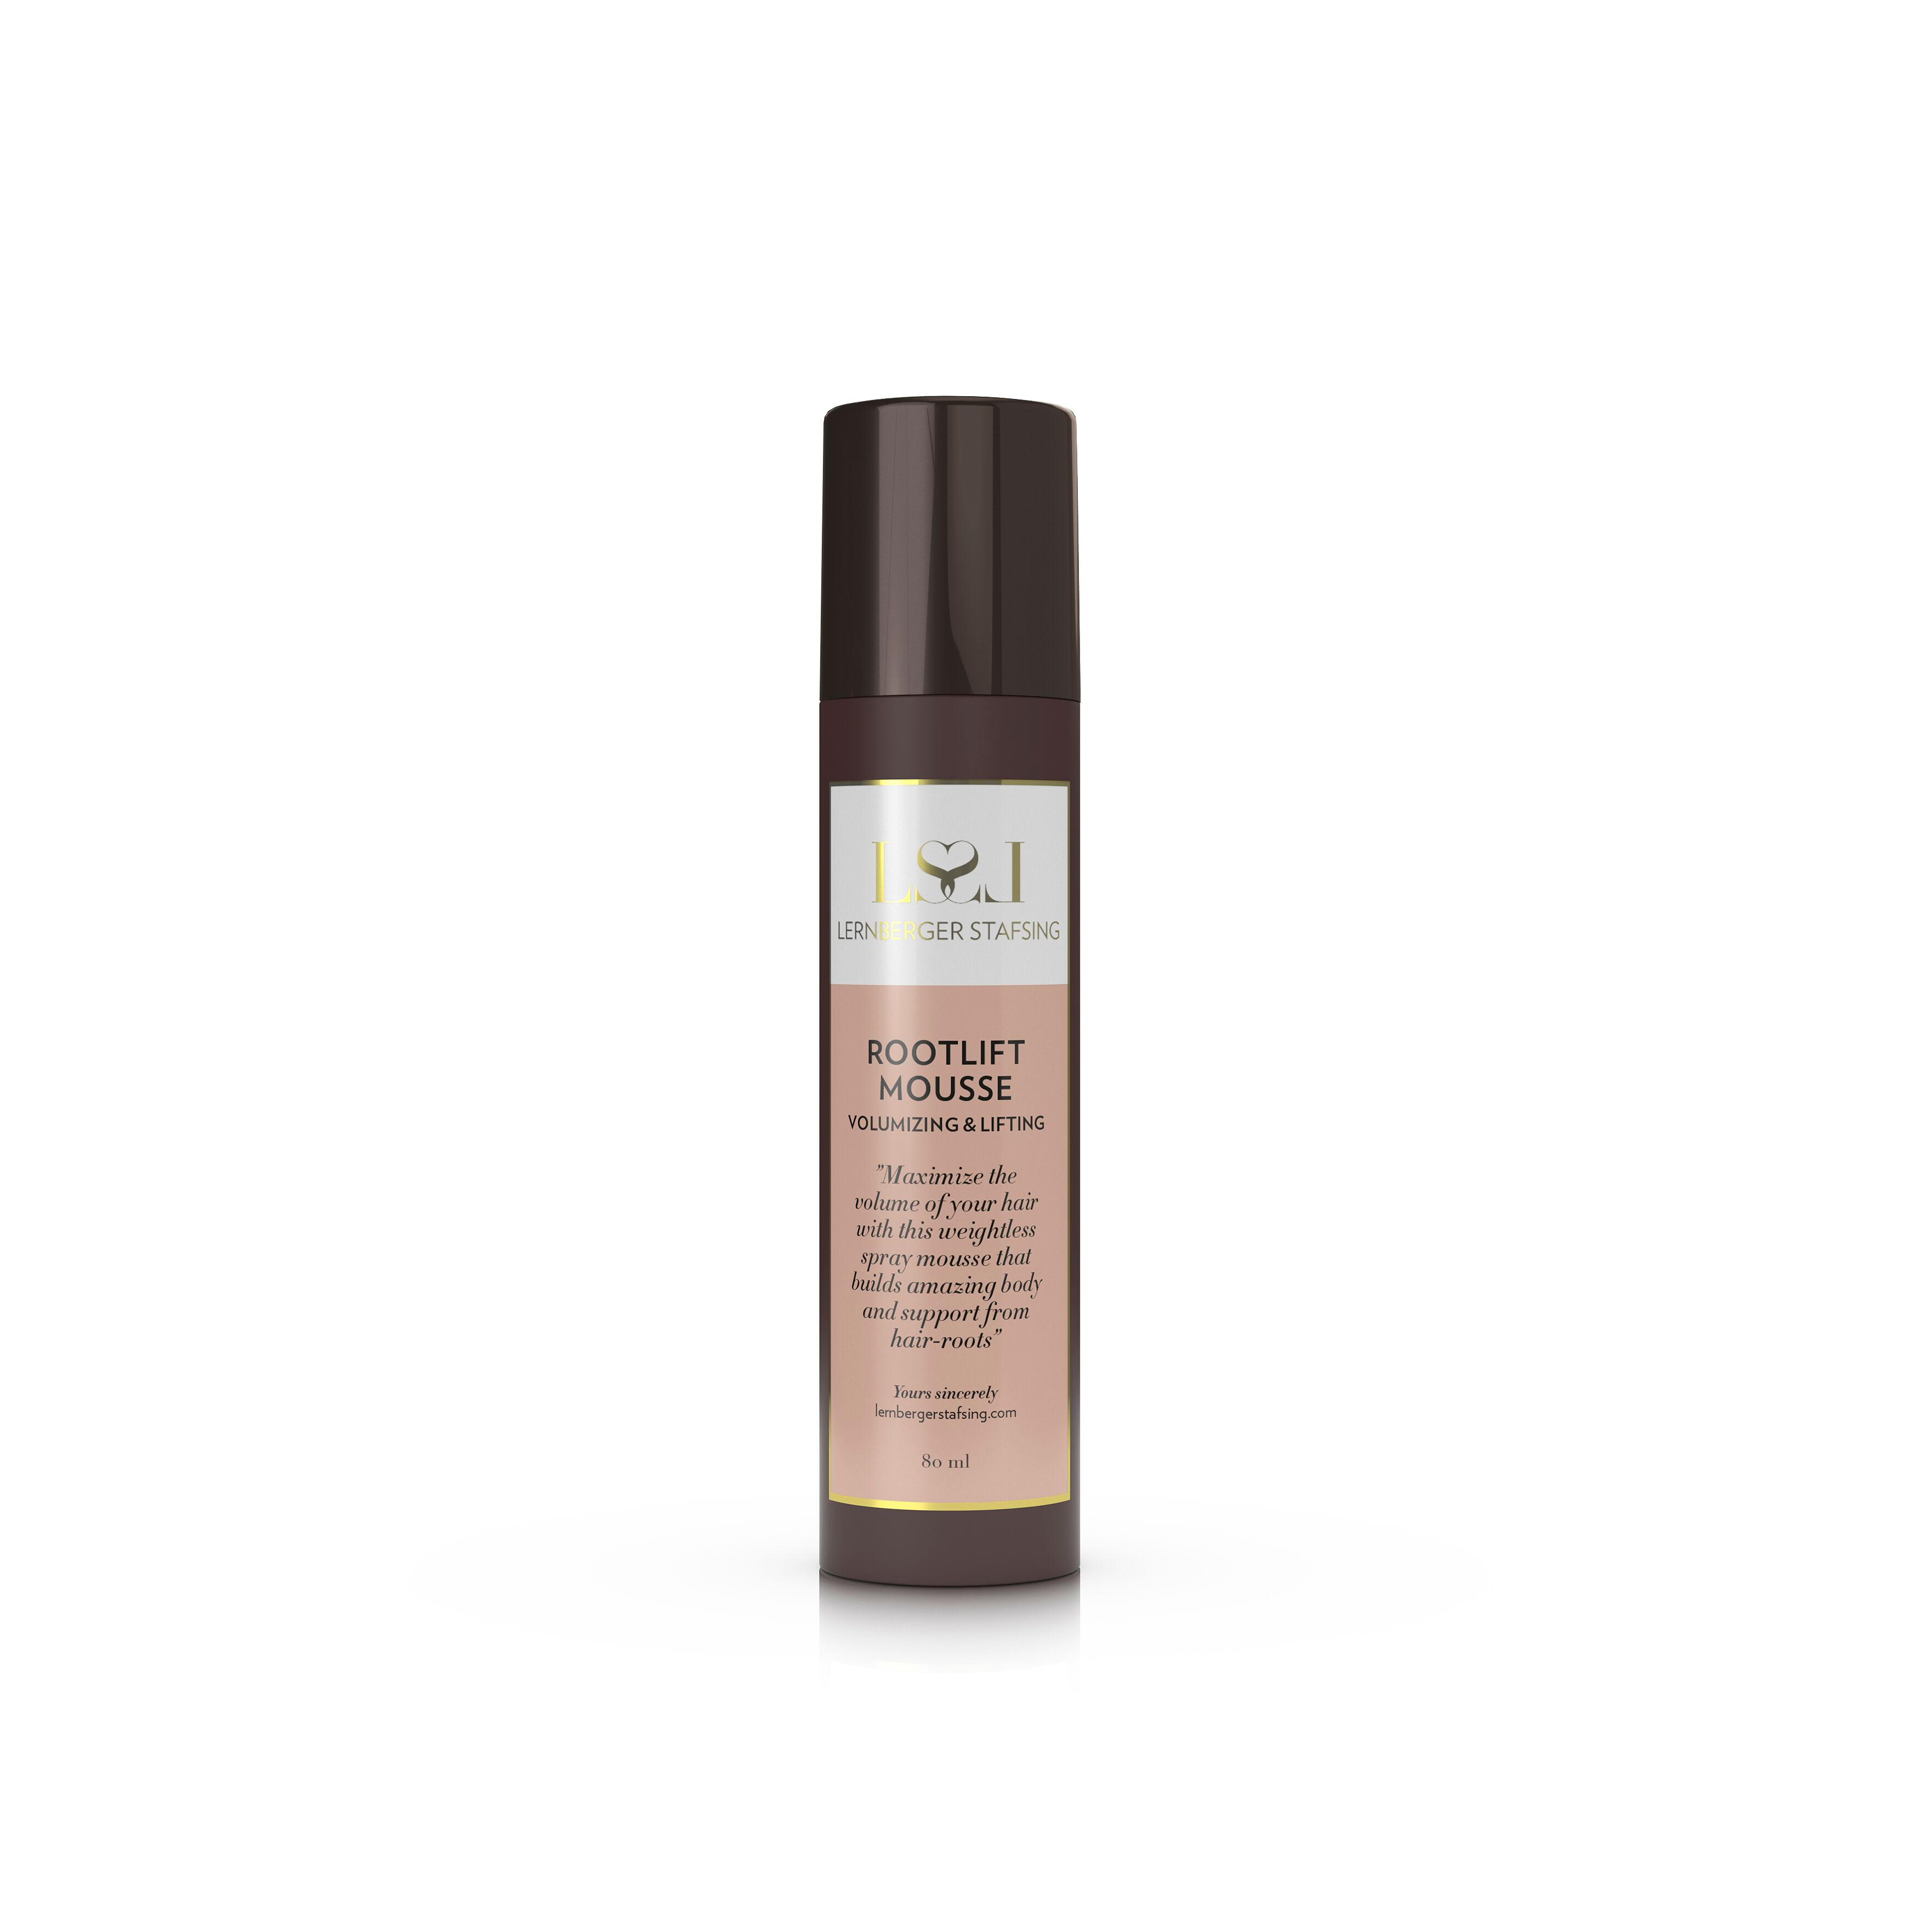 Lernberger Stafsing Rootlift Mousse Travel Size, 80 ml